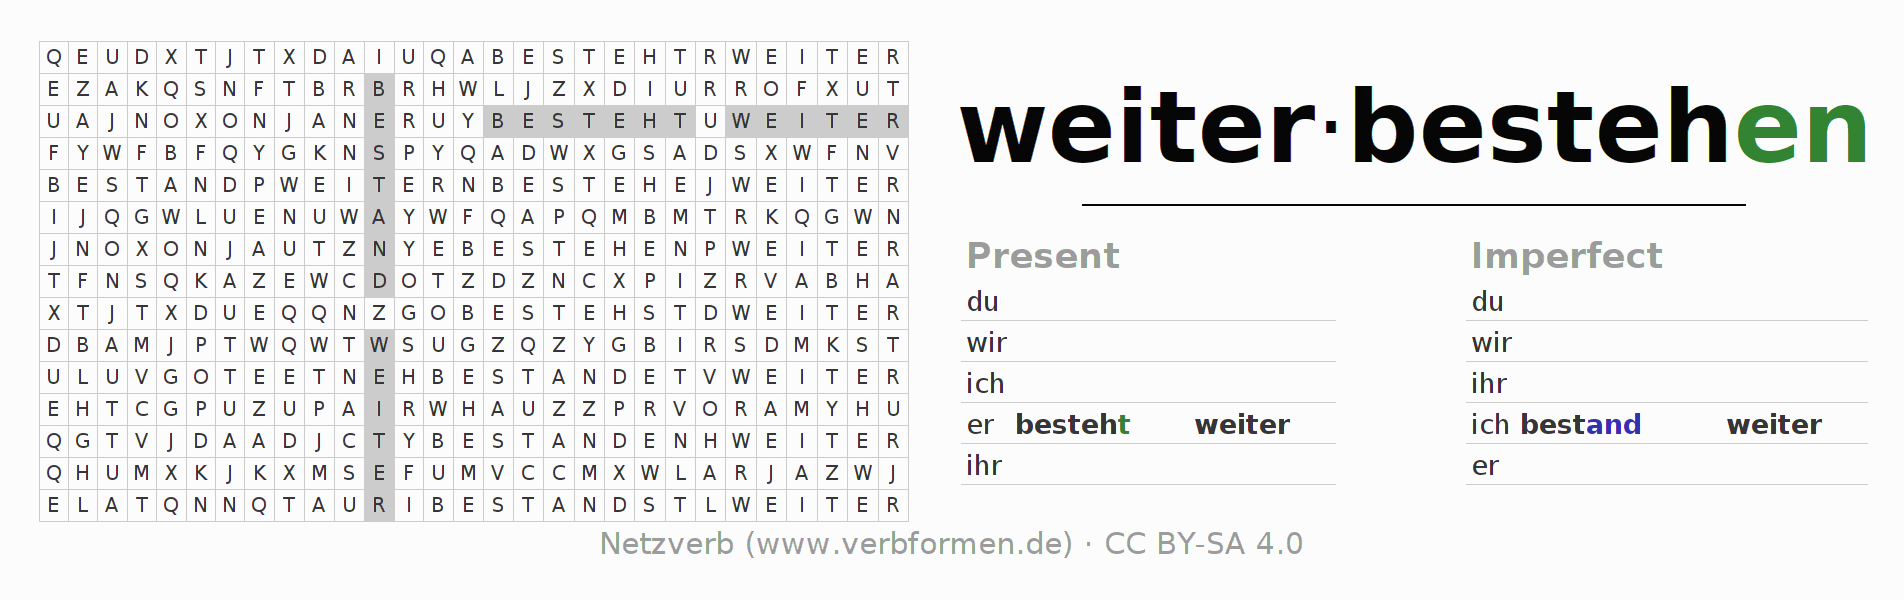 Word search puzzle for the conjugation of the verb weiterbestehen